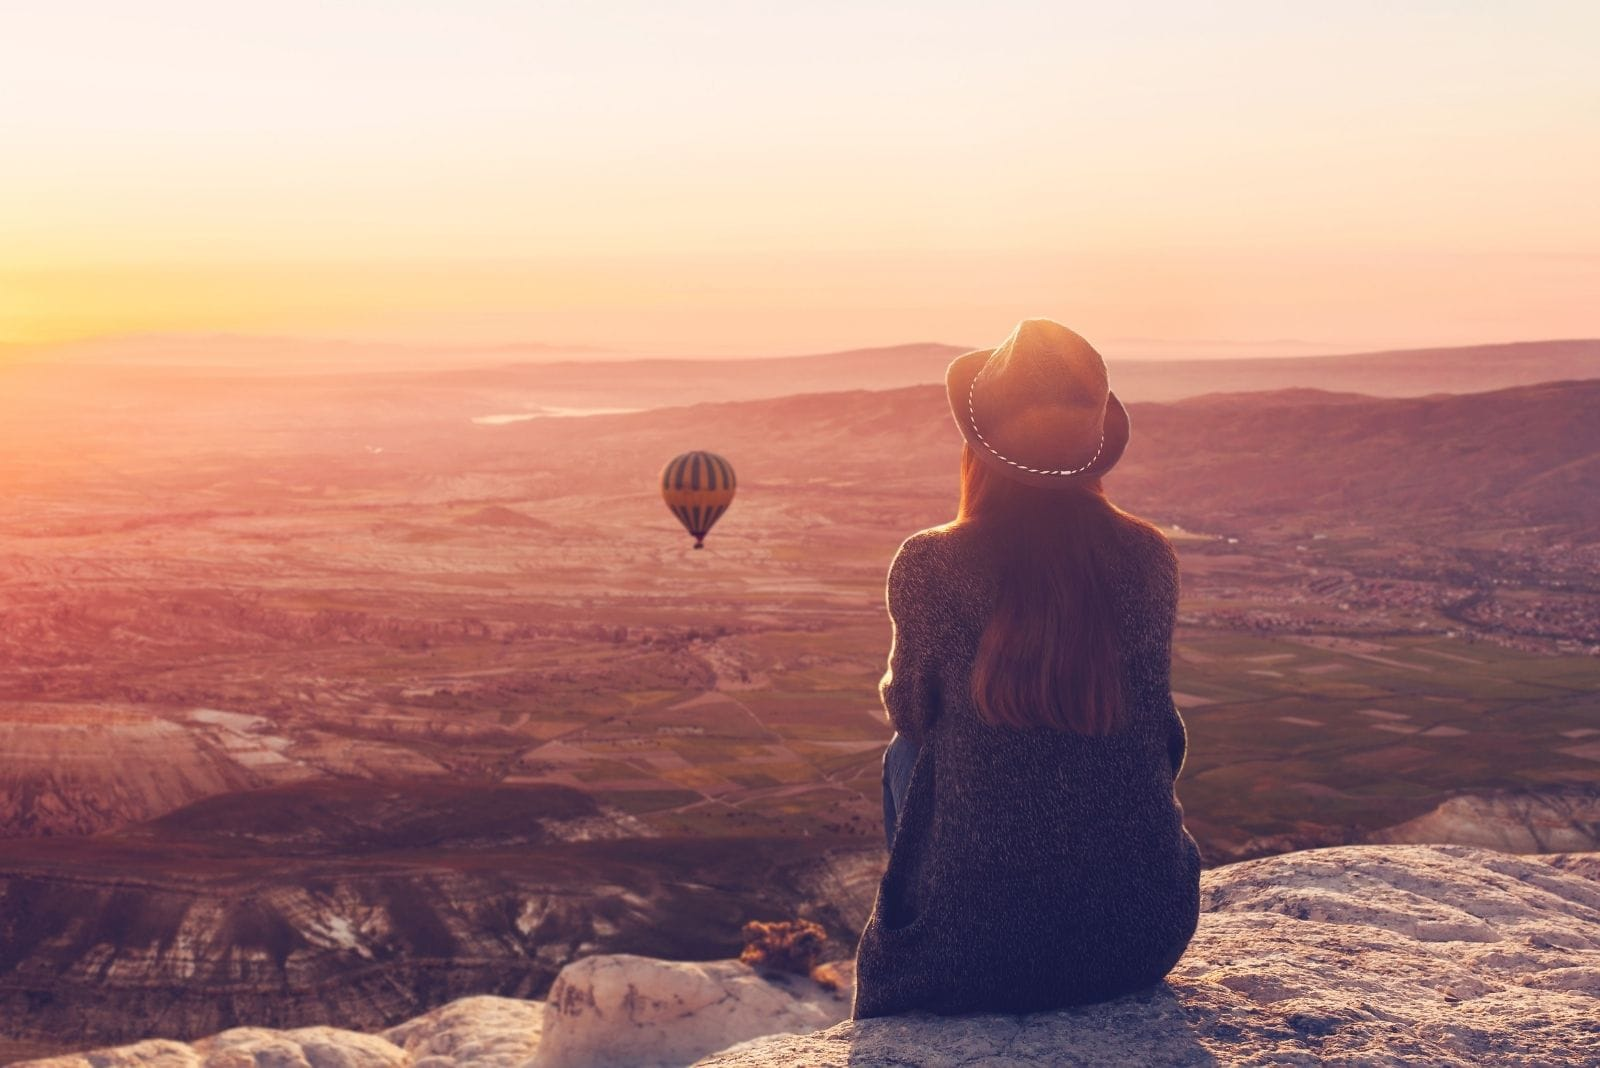 image of woman on top of a mountain admiring the balloons in the air